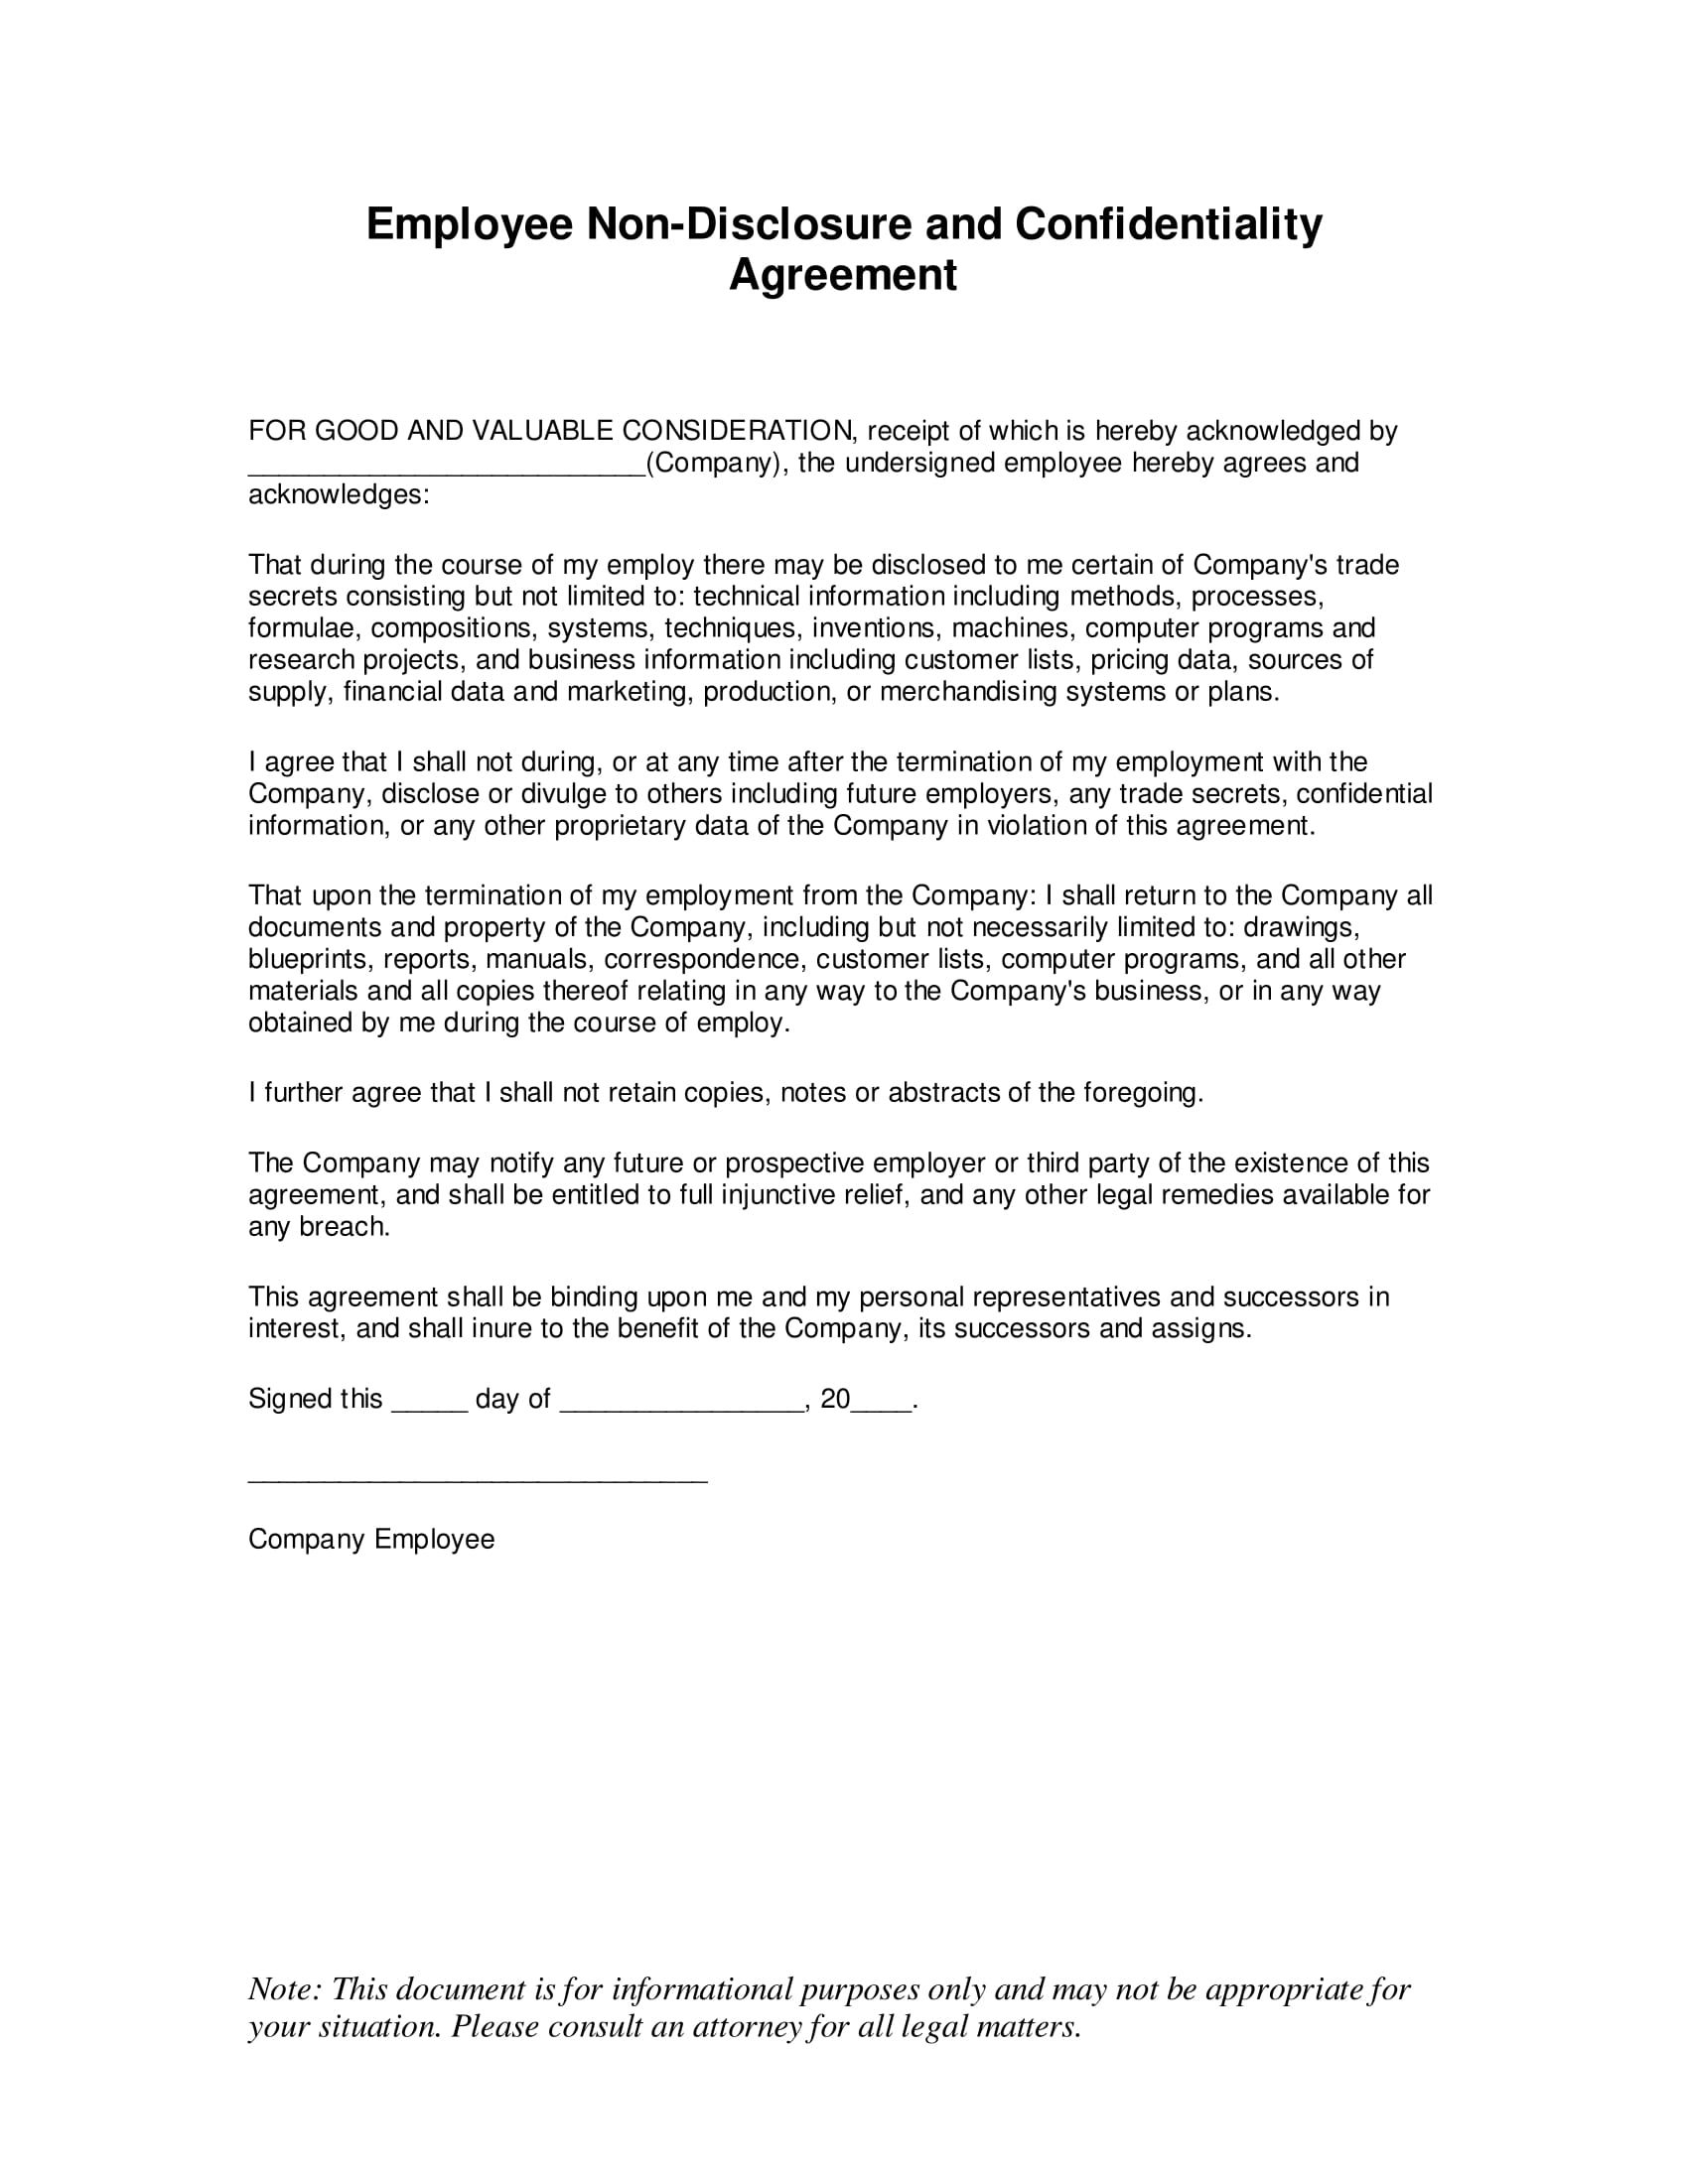 employee non disclosure and confidentiality agreement example 1